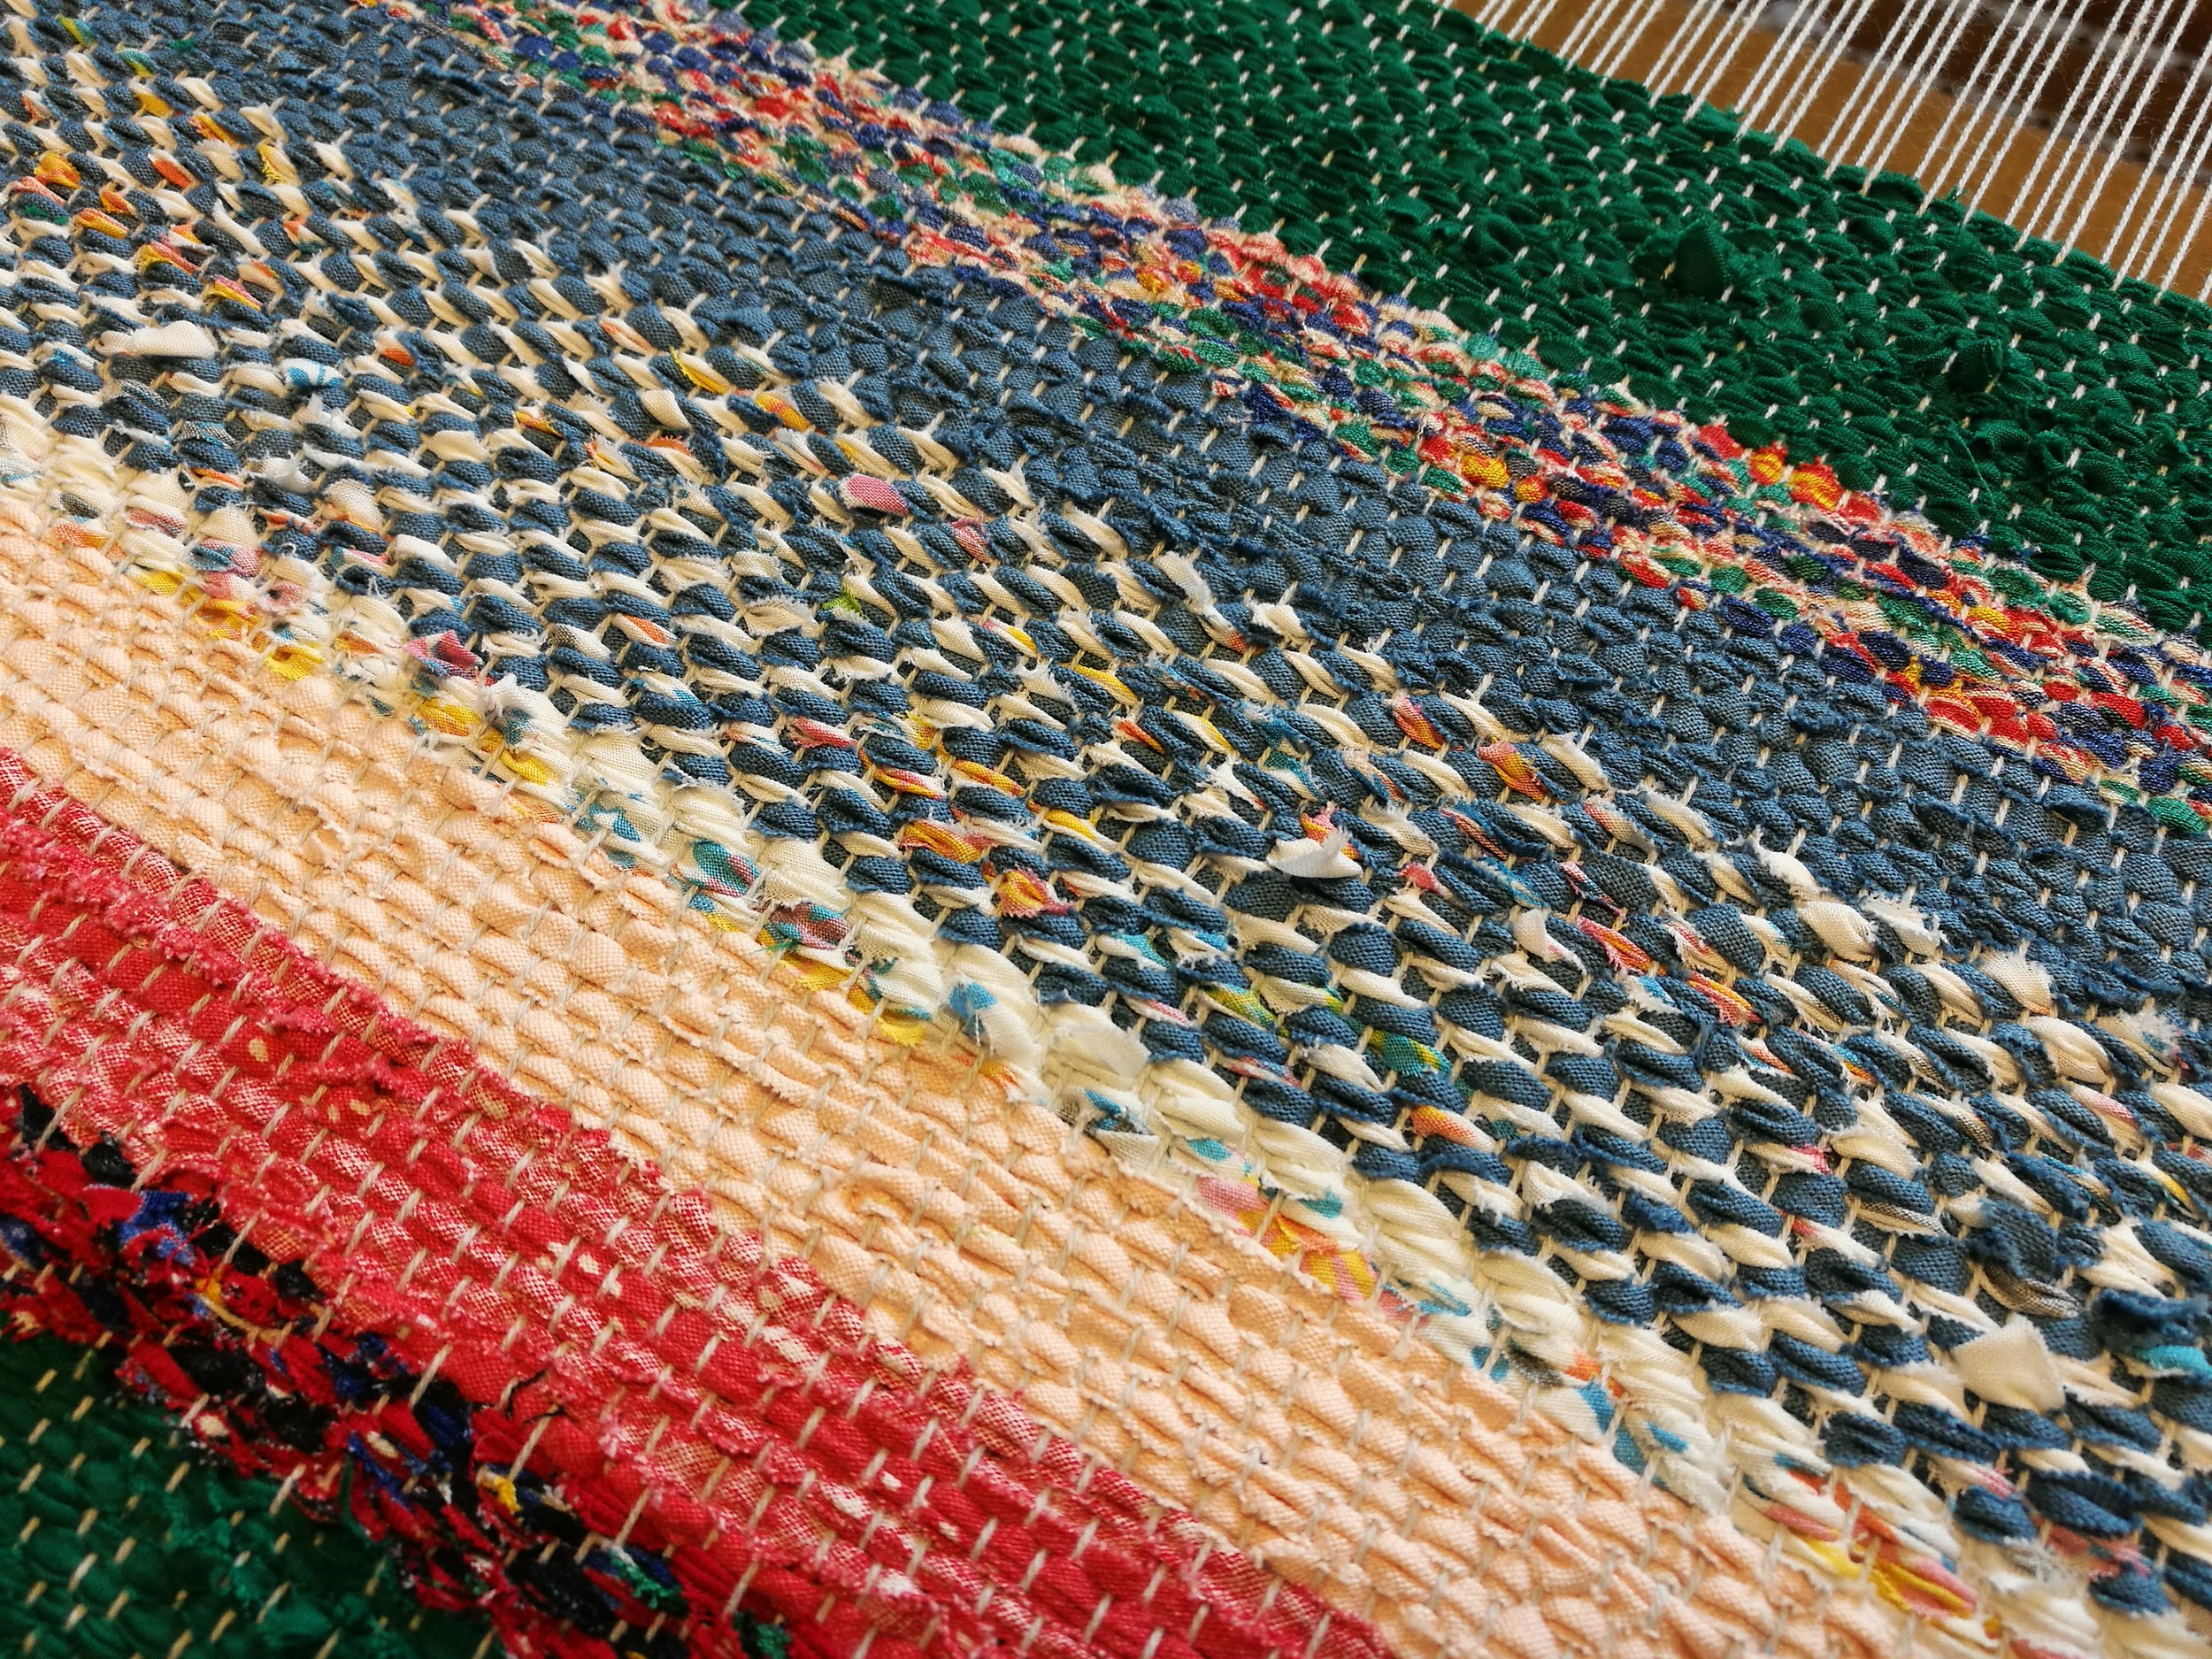 A sample that has been woven with different materials in plain weave and twill patterns